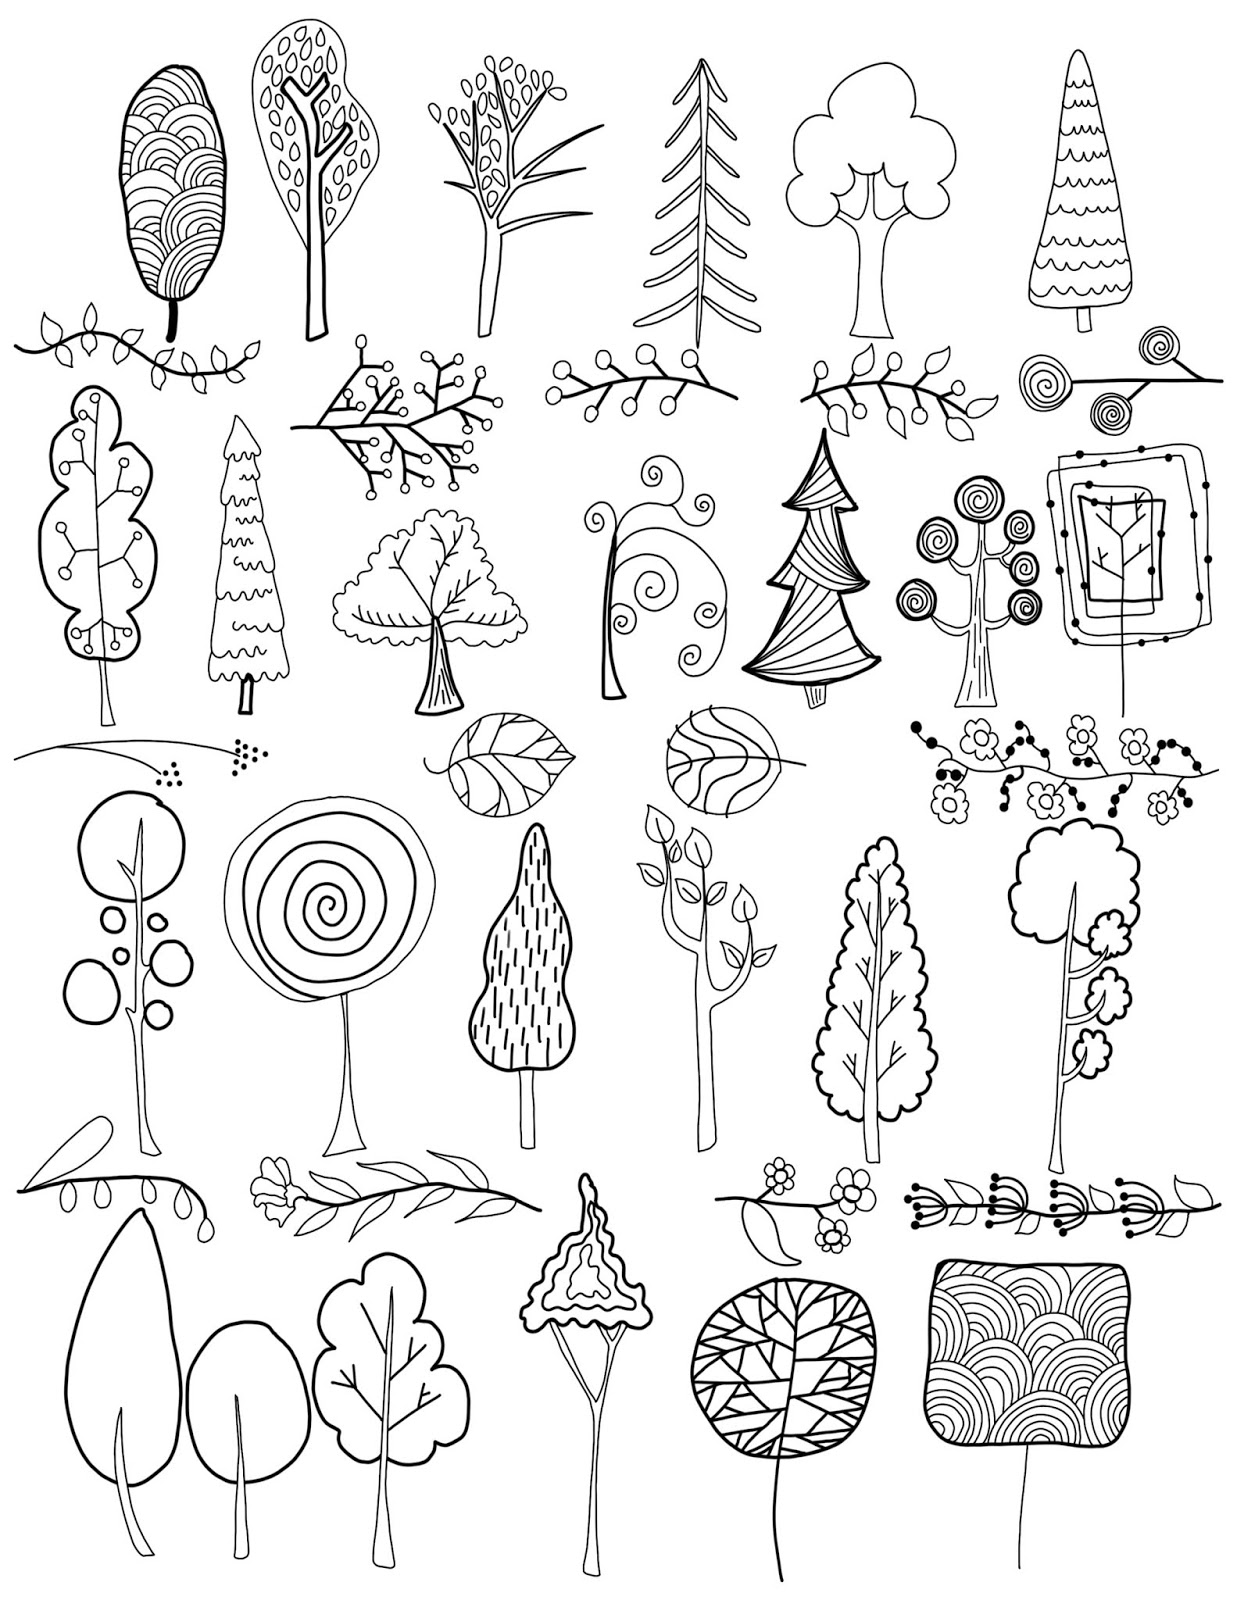 Color these pages or even share them in your classrooms for personal use only please no resale id love if you share your colored works with me on